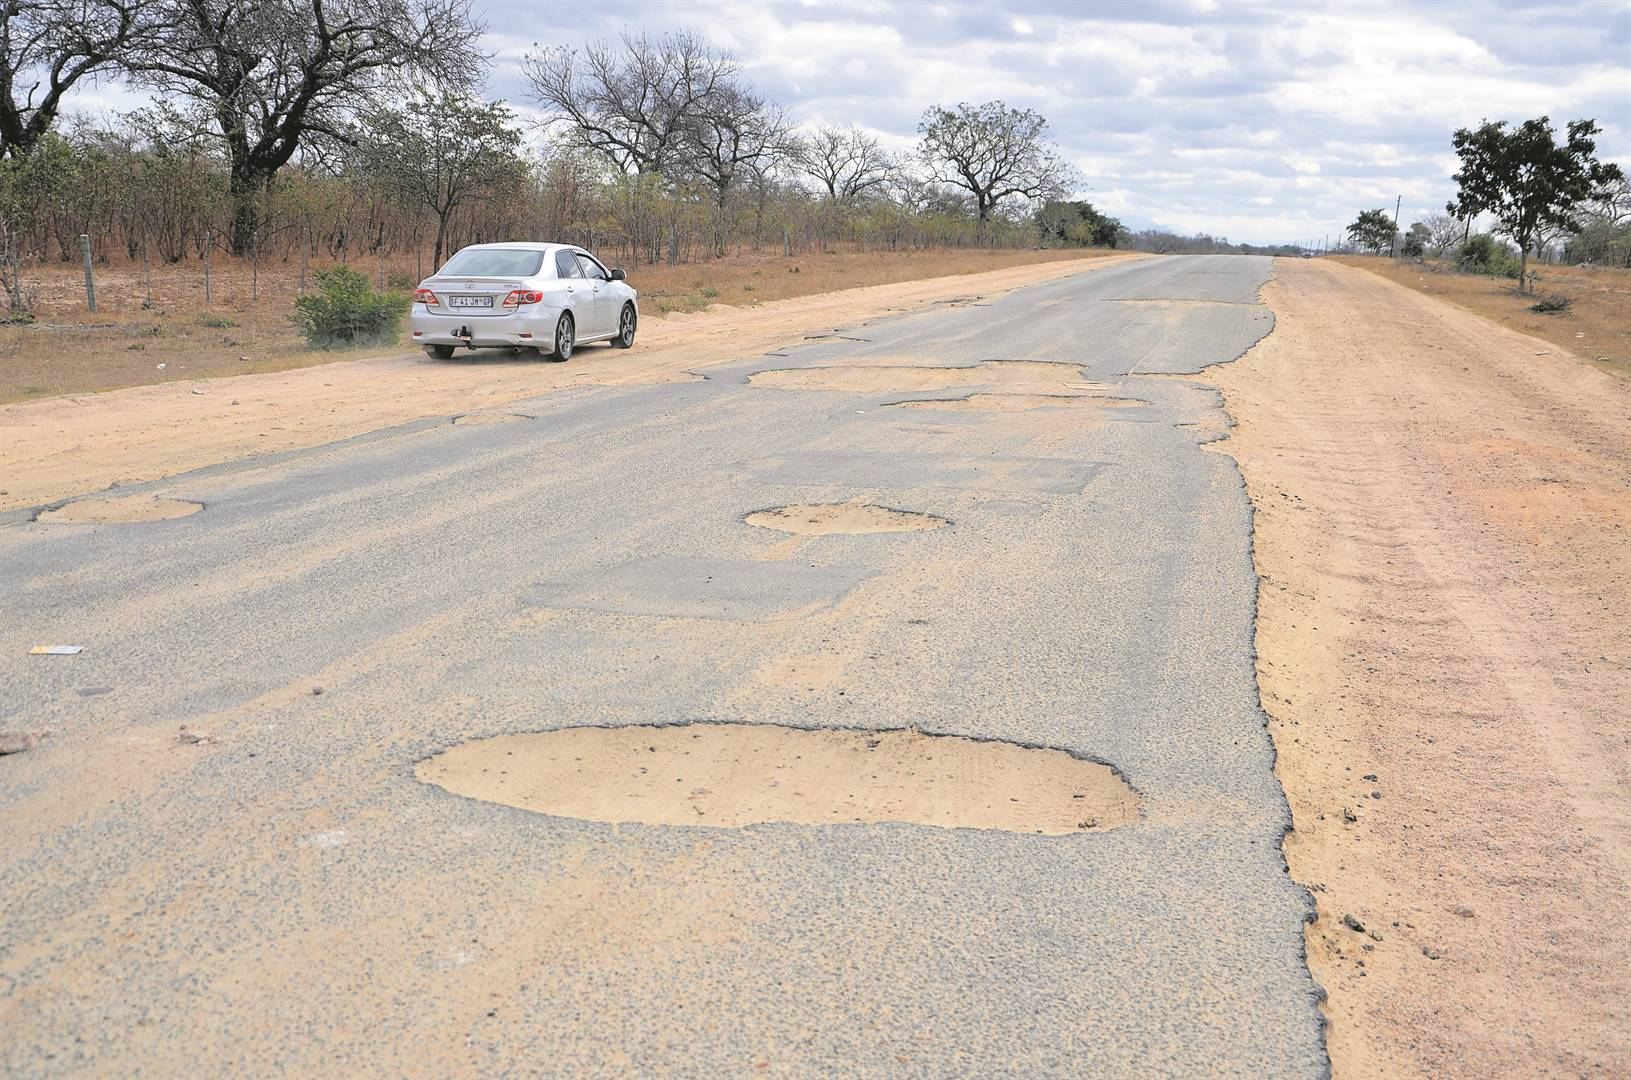 Elephant tramples suspected poacher to death at Kruger National Park - News24